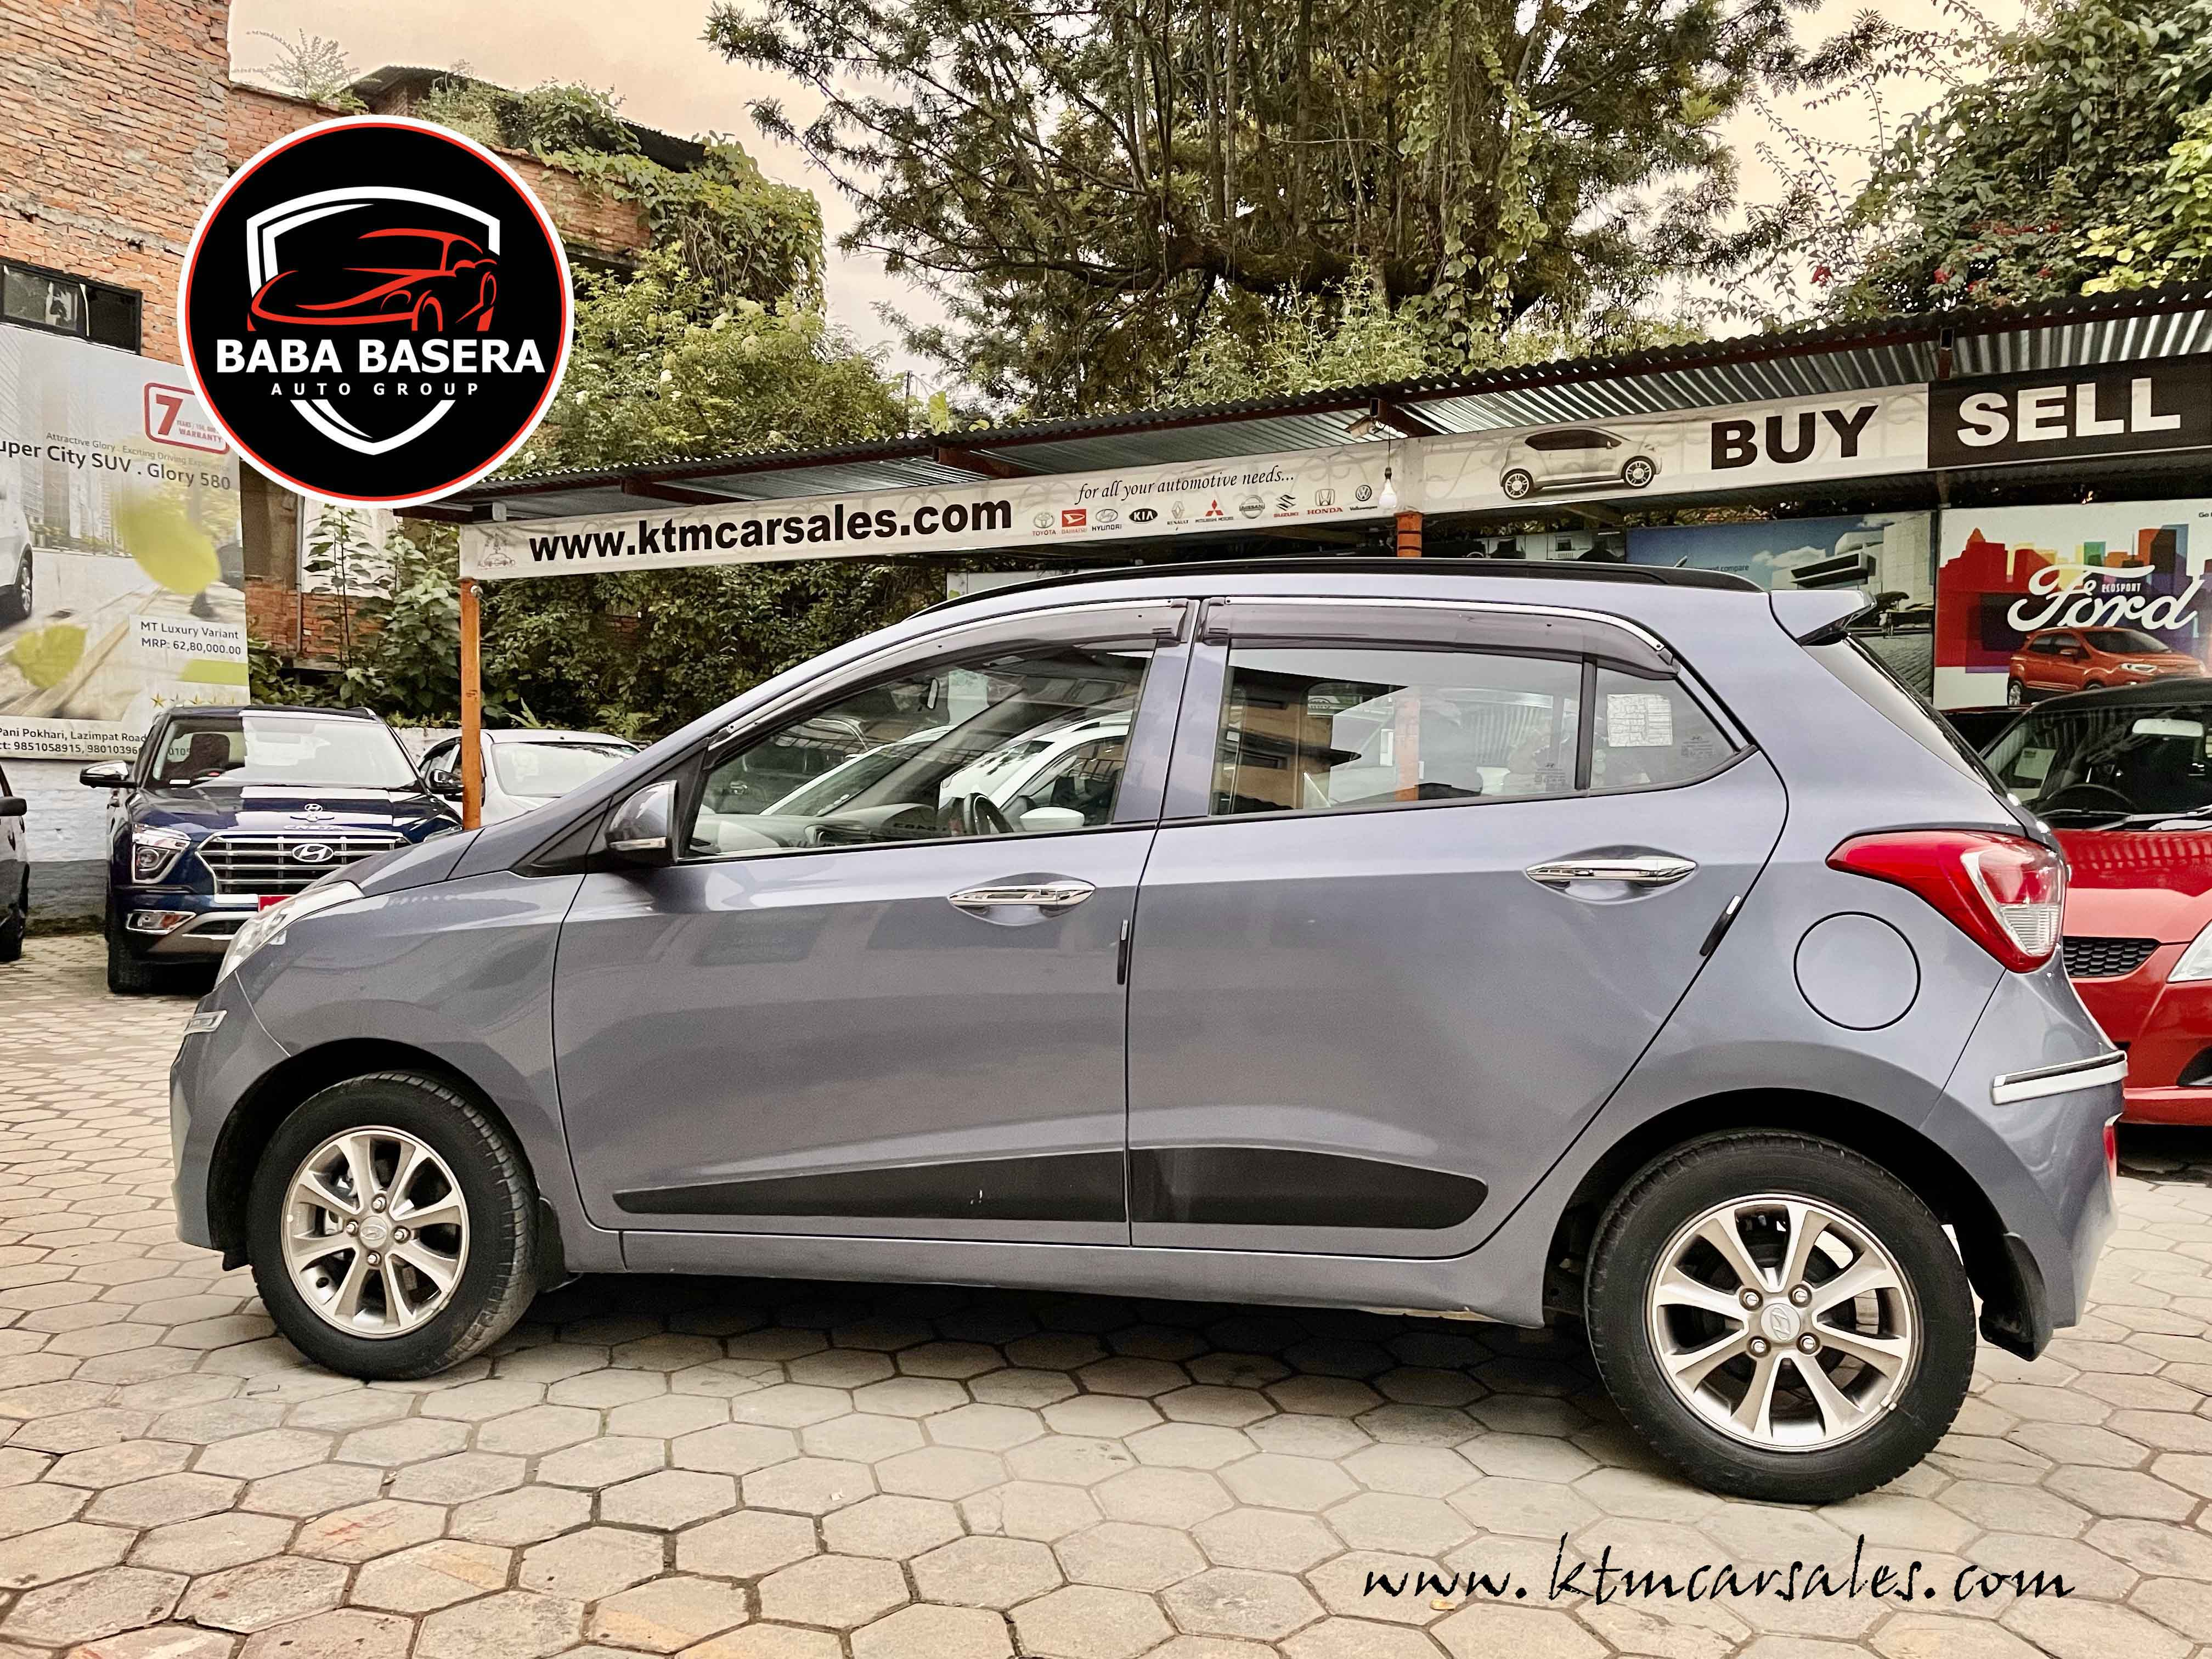 Single Owner HYUNDAI GRAND I10 ASTA 'O' Full Pack Edition Only 12k km Run Untouched spare wheel - Image 6